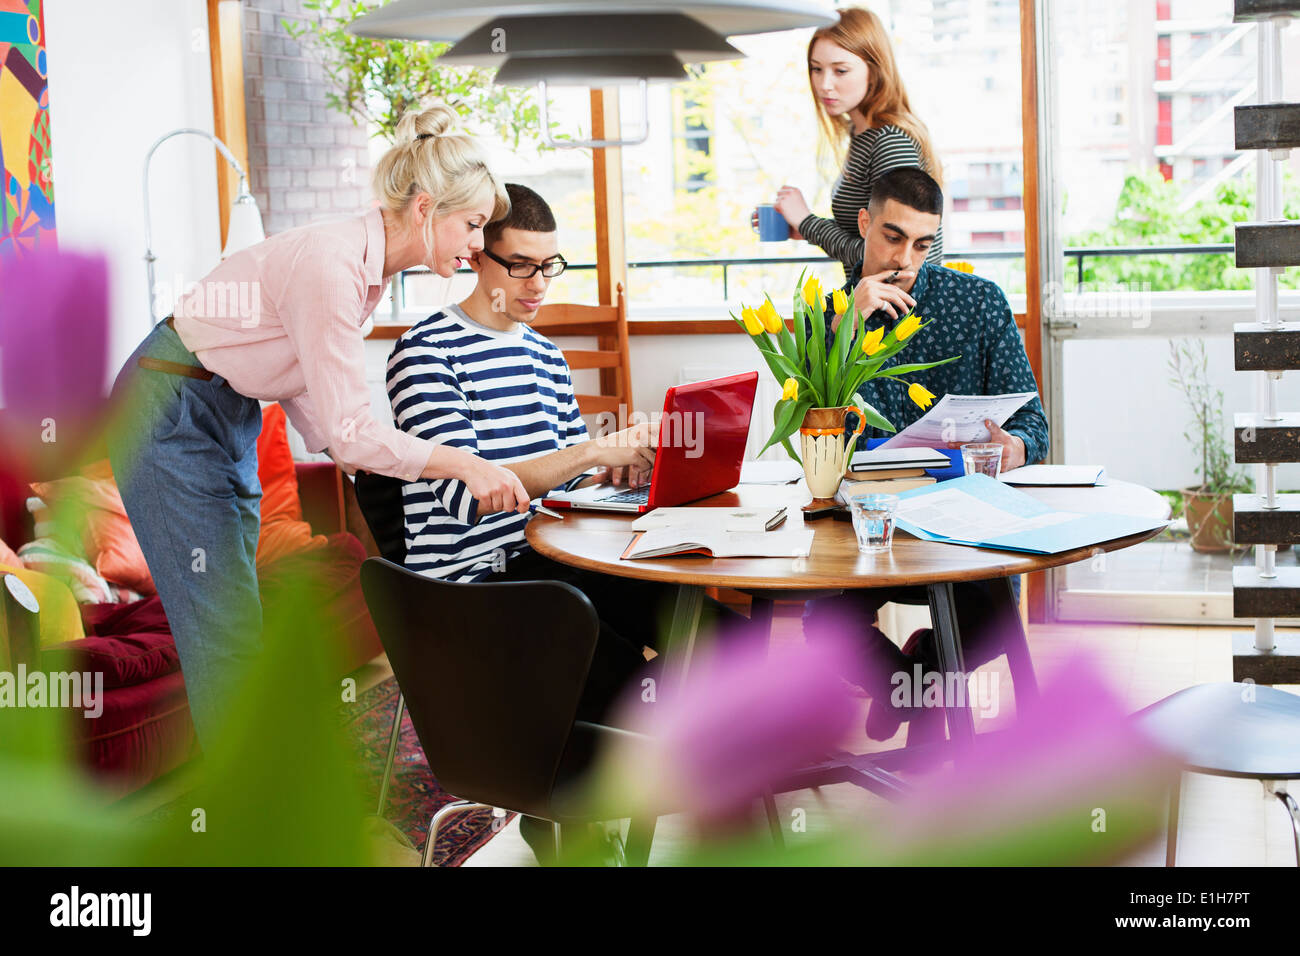 Four young adults sitting around table studying - Stock Image